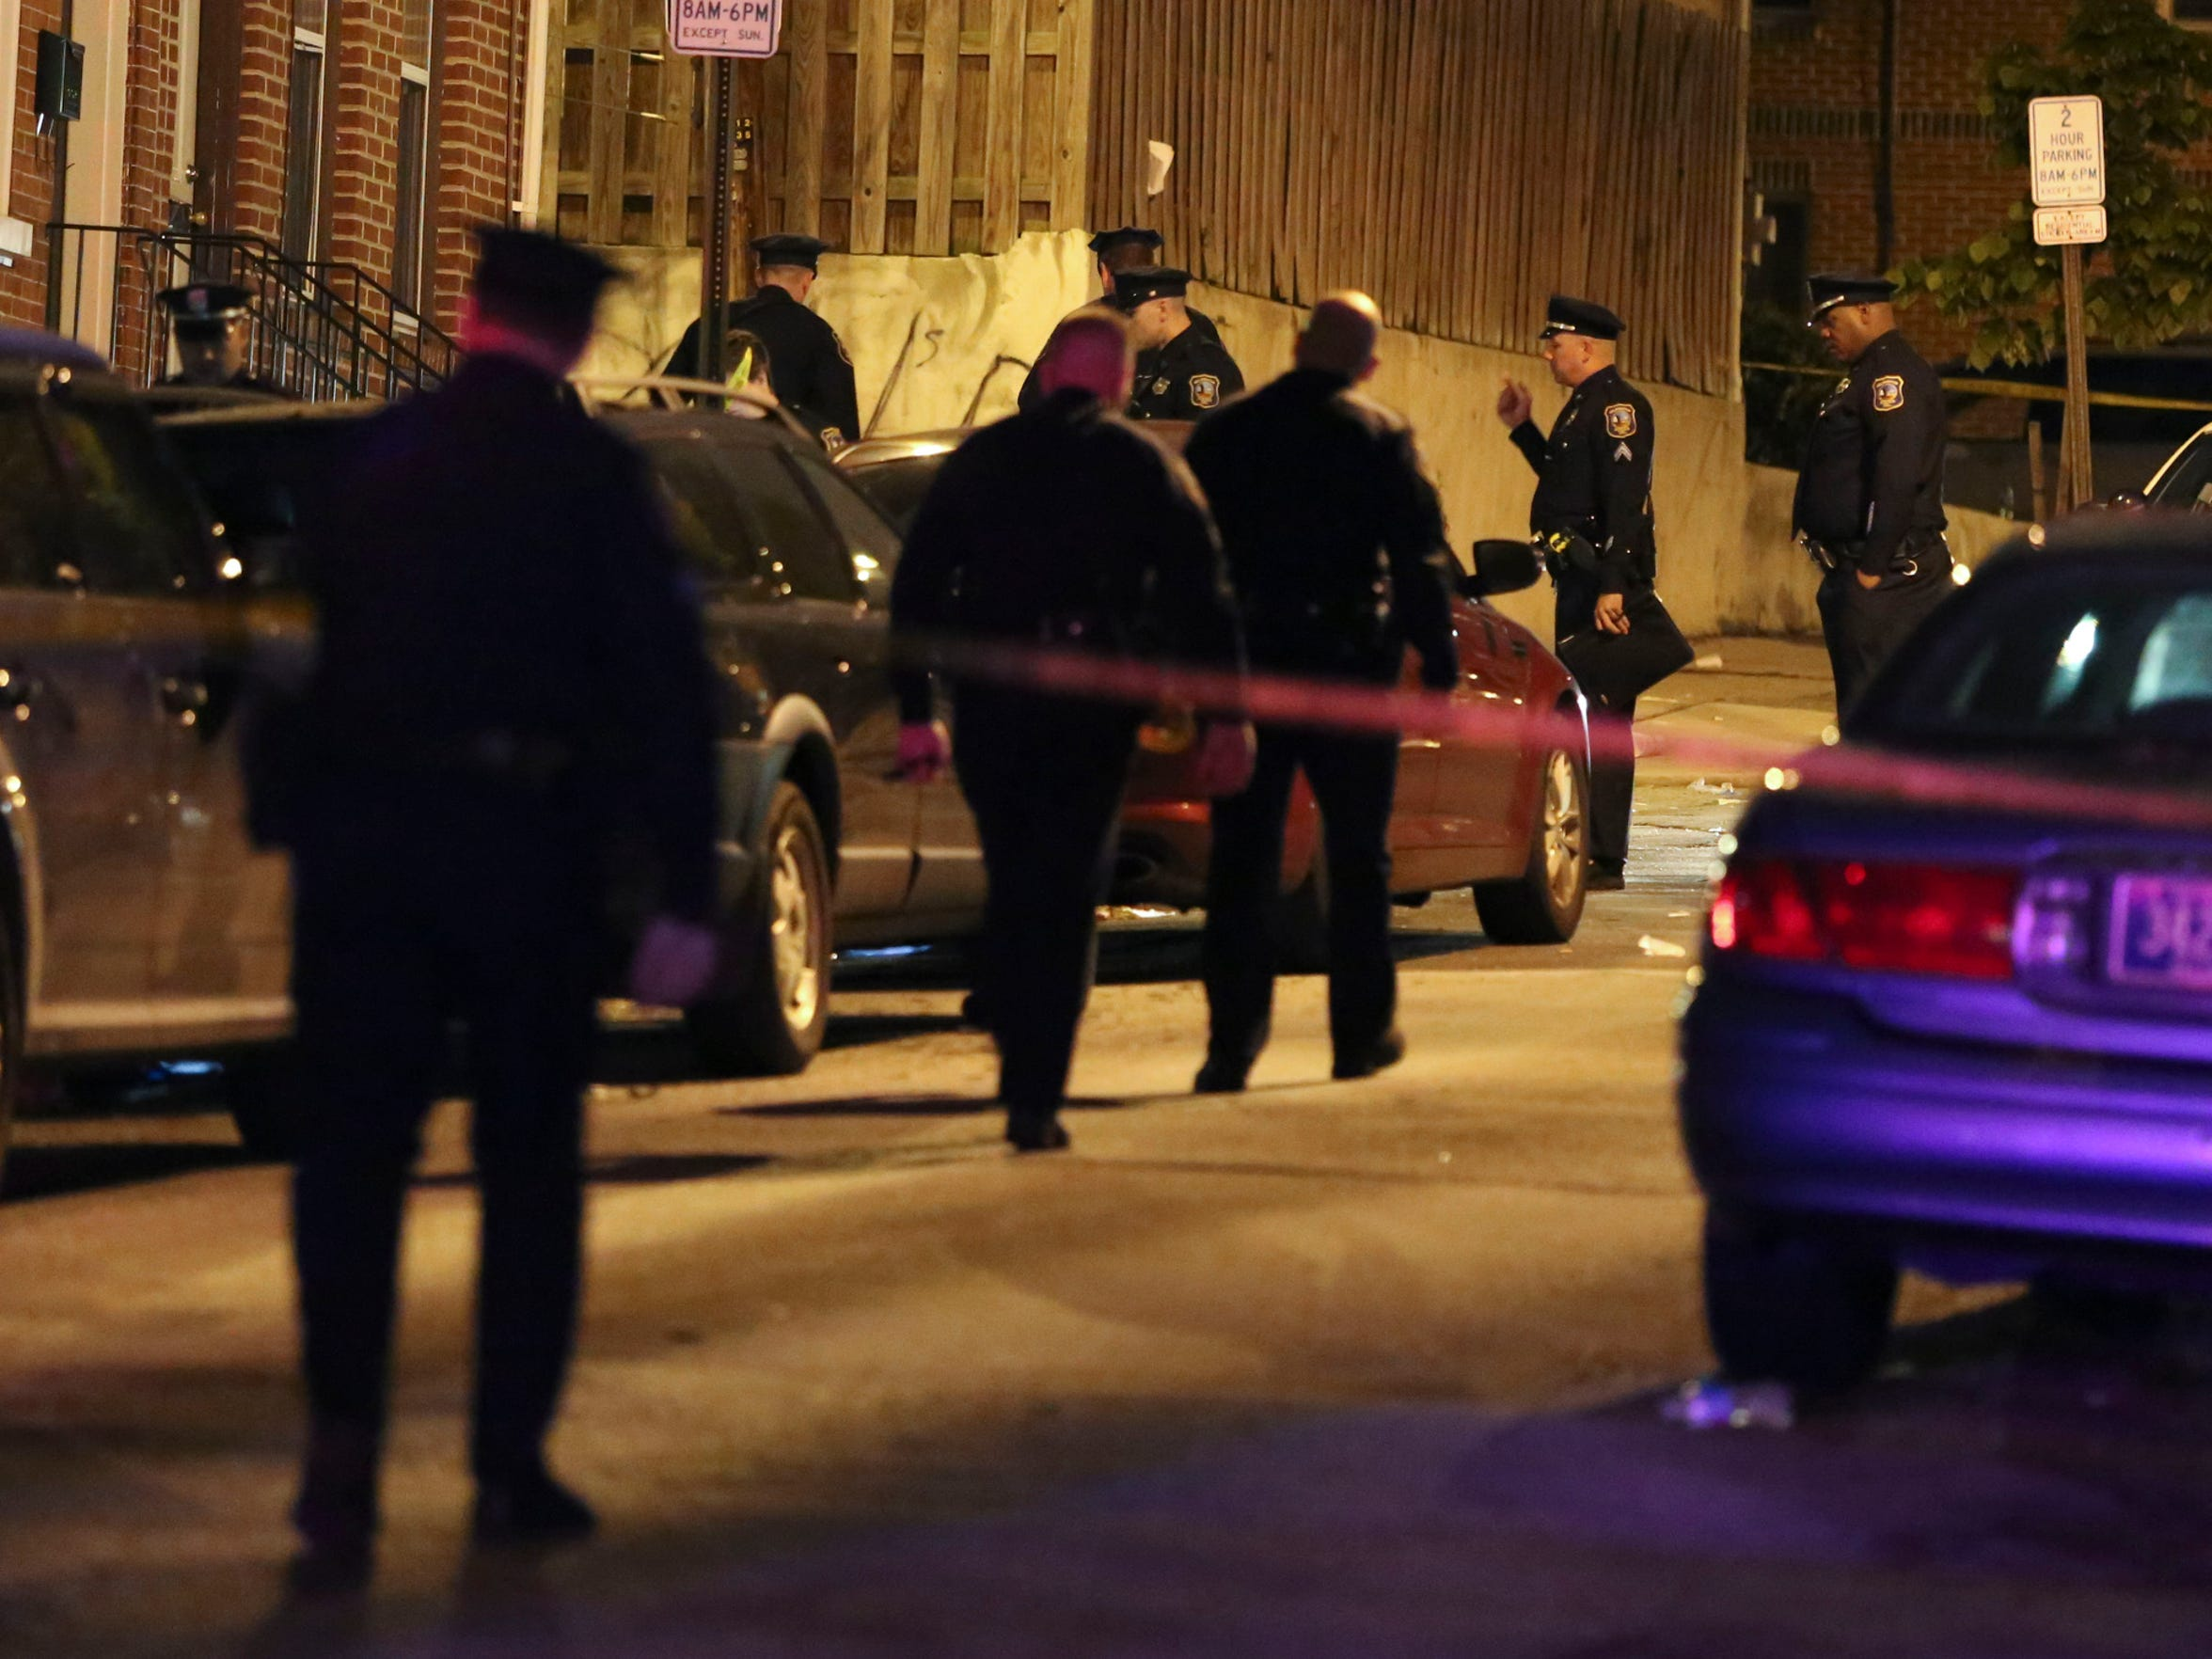 Wilmington police investigate a shooting in the 600 block of W. 6th Street, reported about 10:40 pm Tuesday.